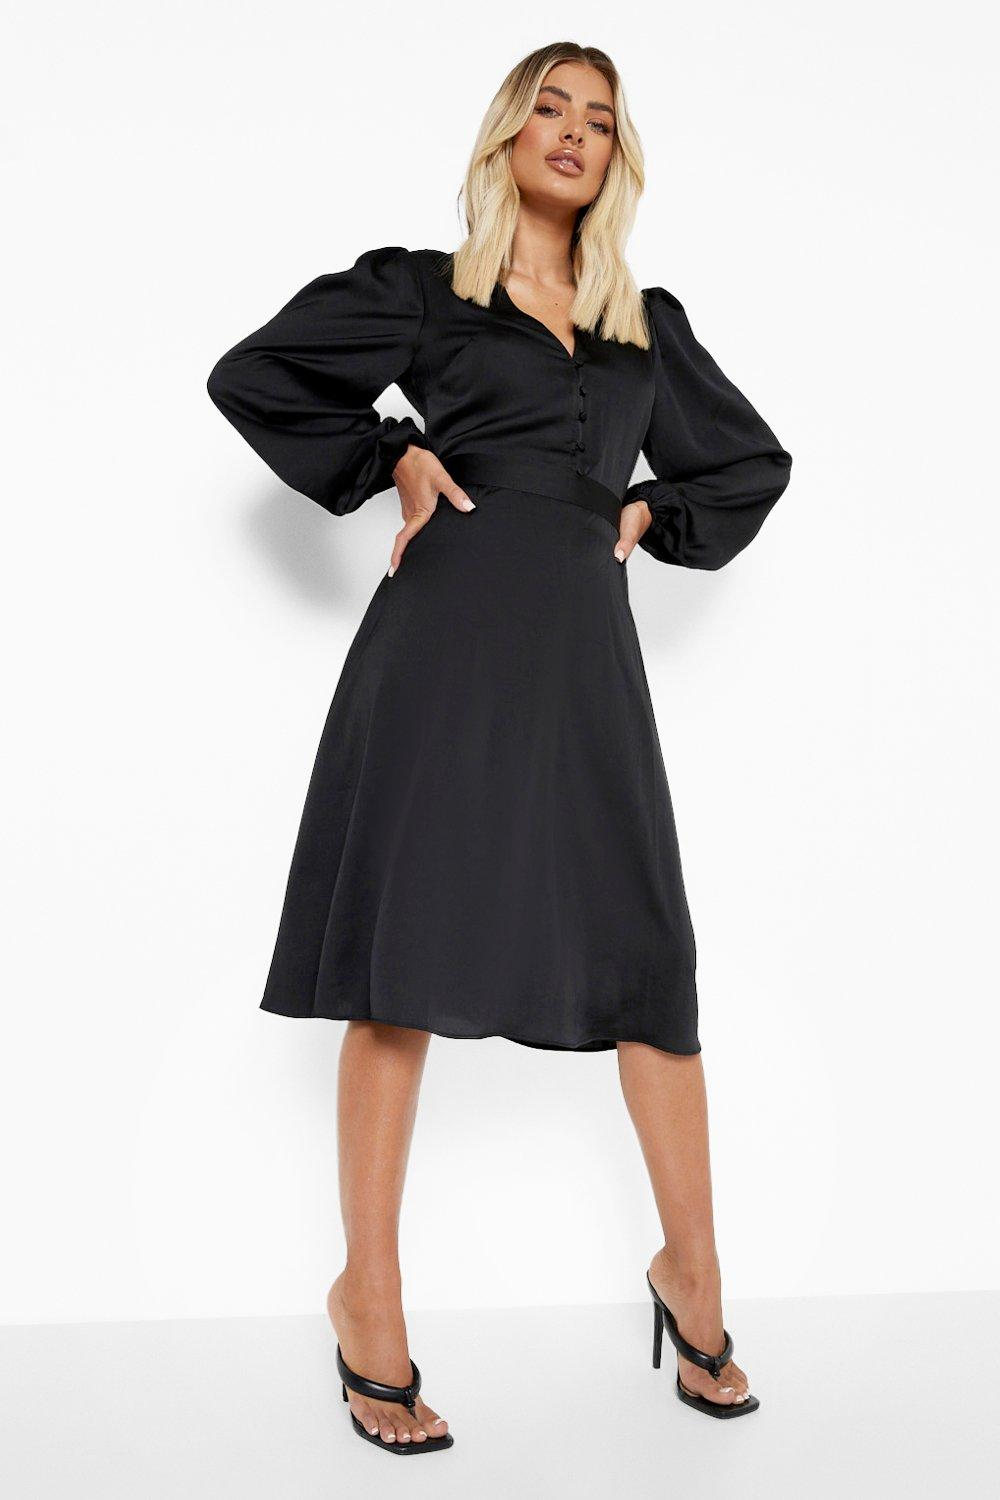 1980s Clothing, Fashion | 80s Style Clothes Womens Satin Puff Sleeve Button Detail Midi Dress - Black - 14 $24.00 AT vintagedancer.com